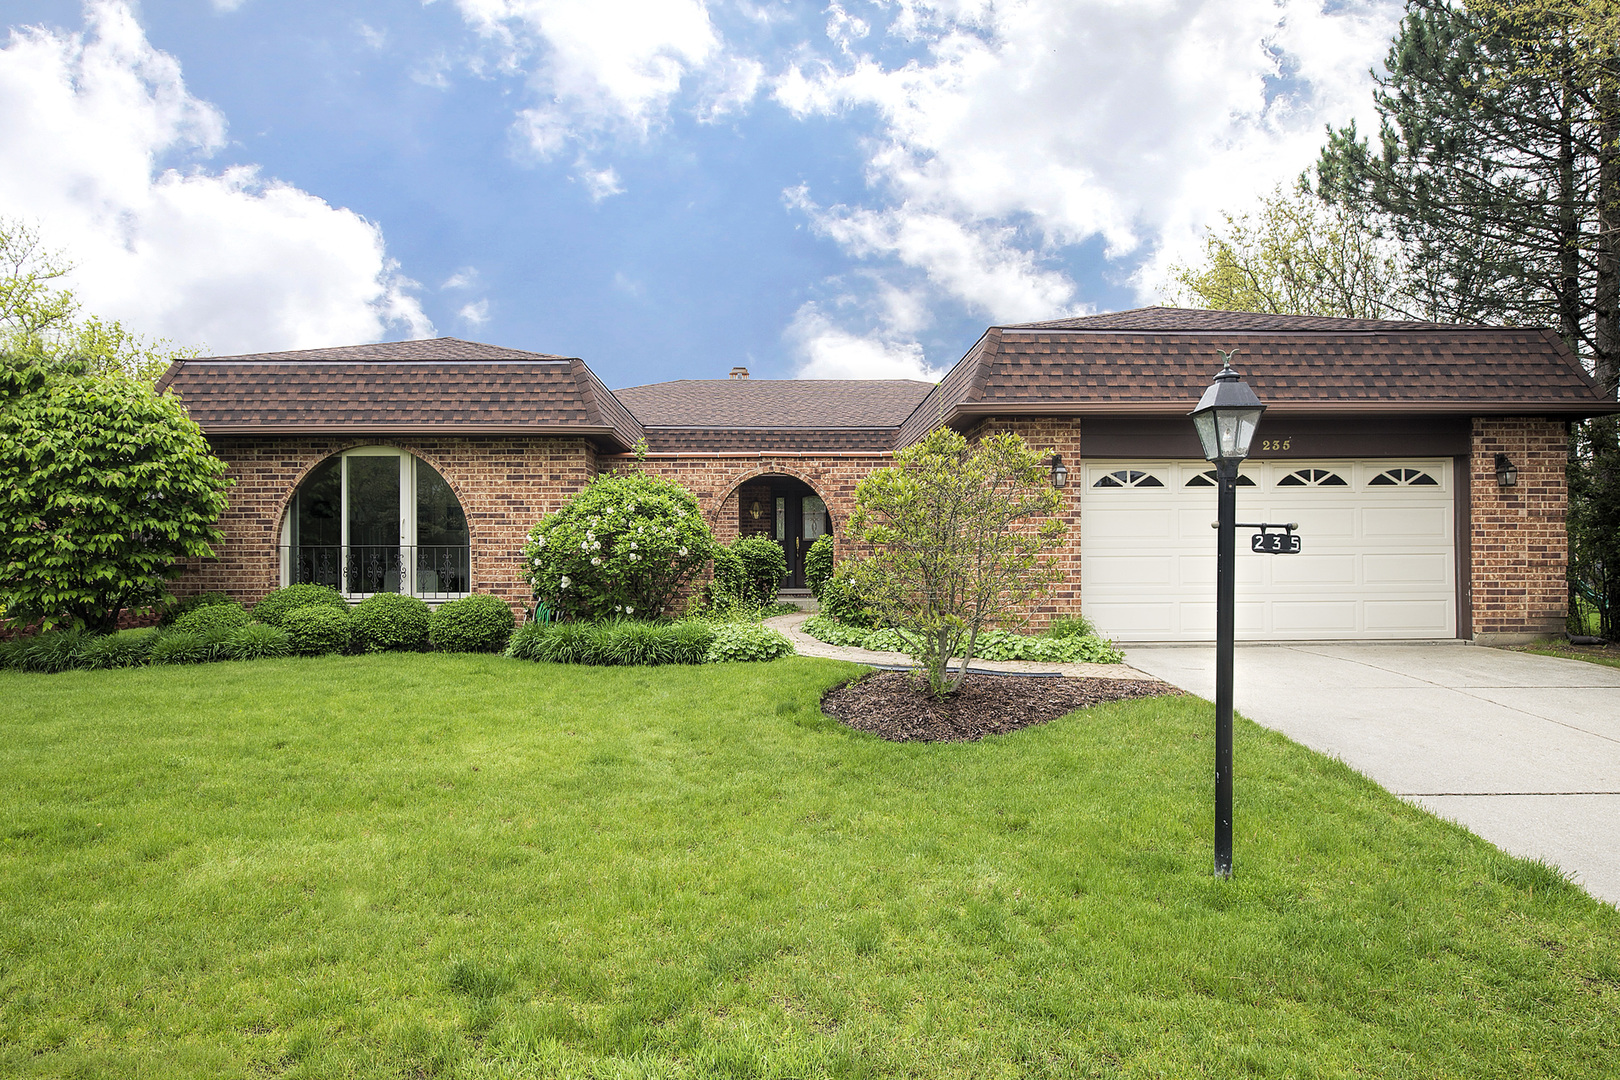 235 Fairview Lane, Northbrook in Cook County, IL 60062 Home for Sale